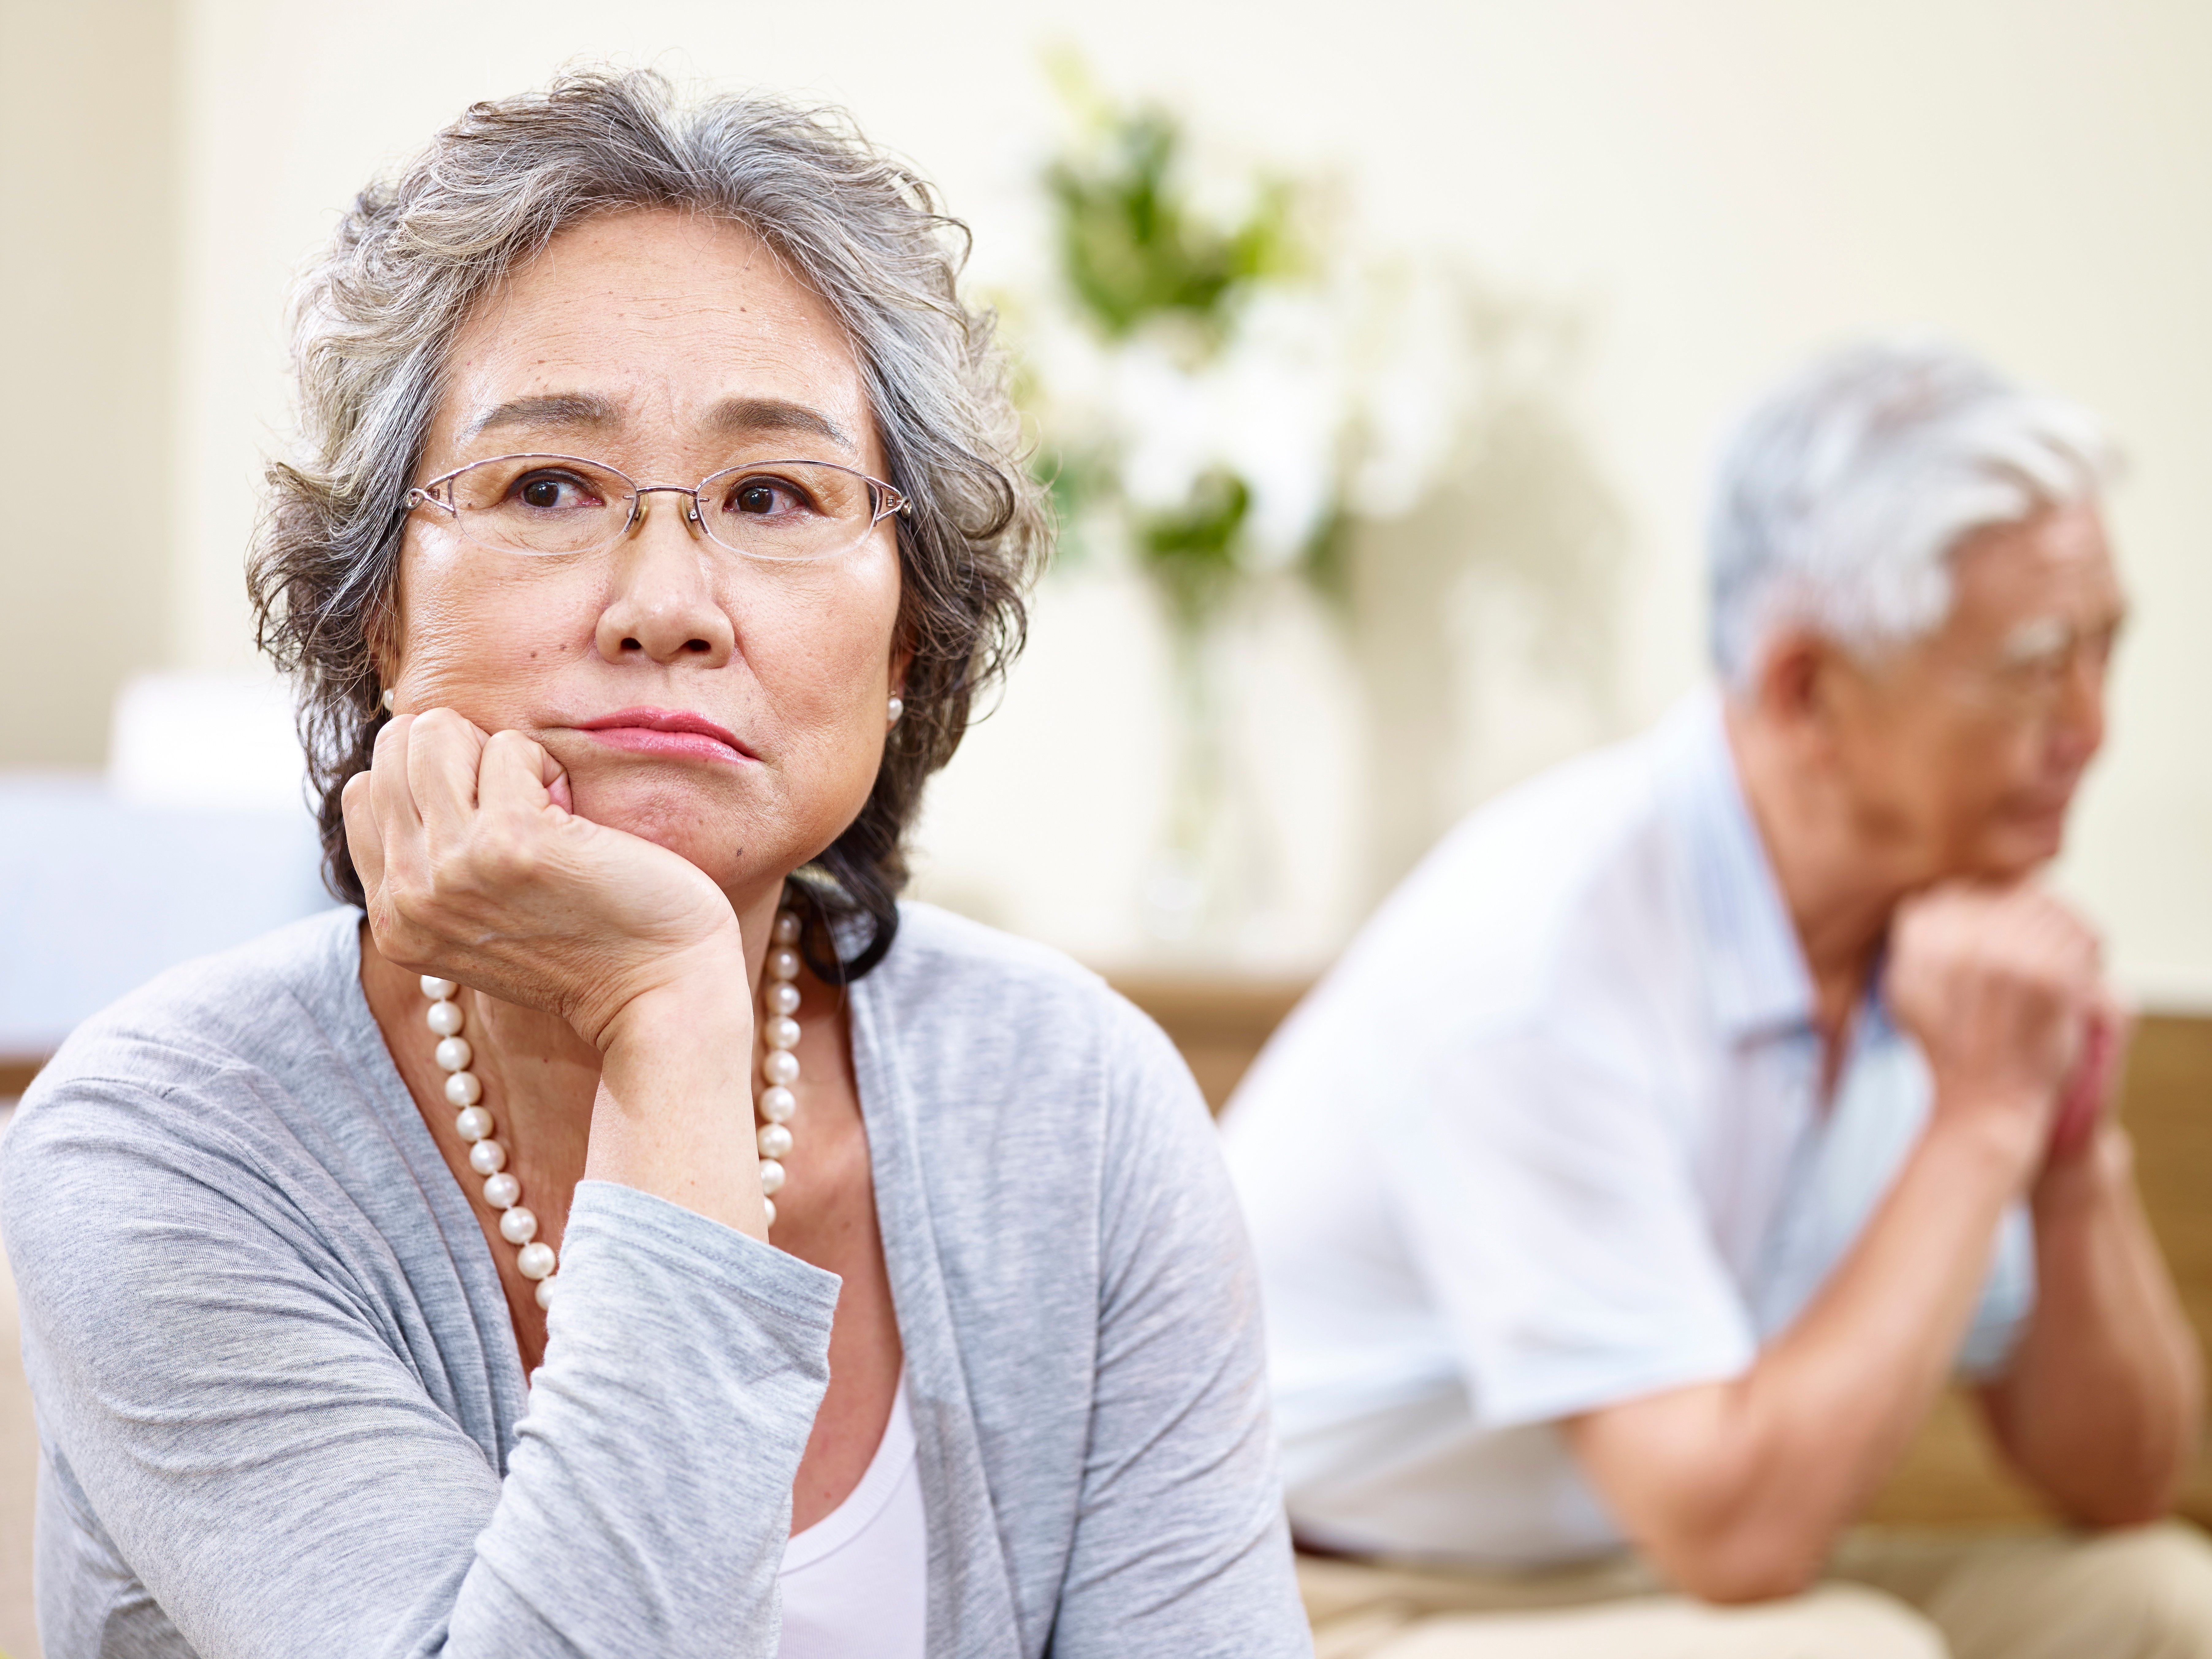 5 Tips for Avoiding Family Conflict When Searching for Assisted Living